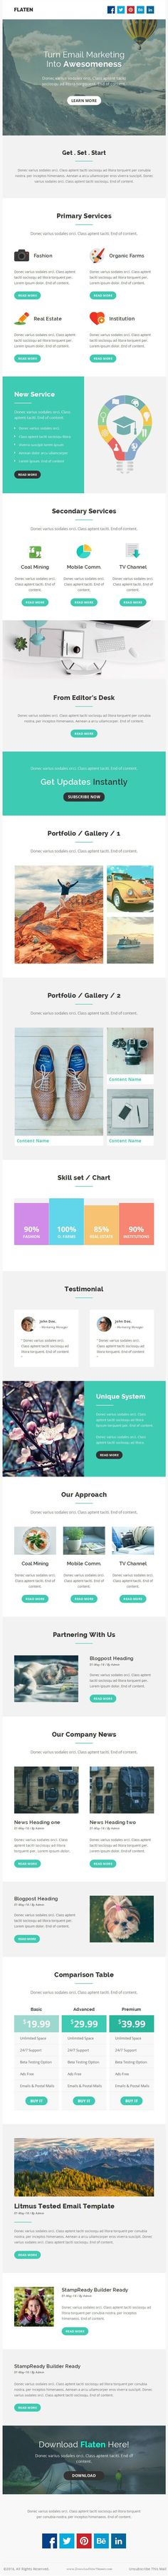 Top 5 Email Template Design Ideas   Email Design   Pinterest   Email ...